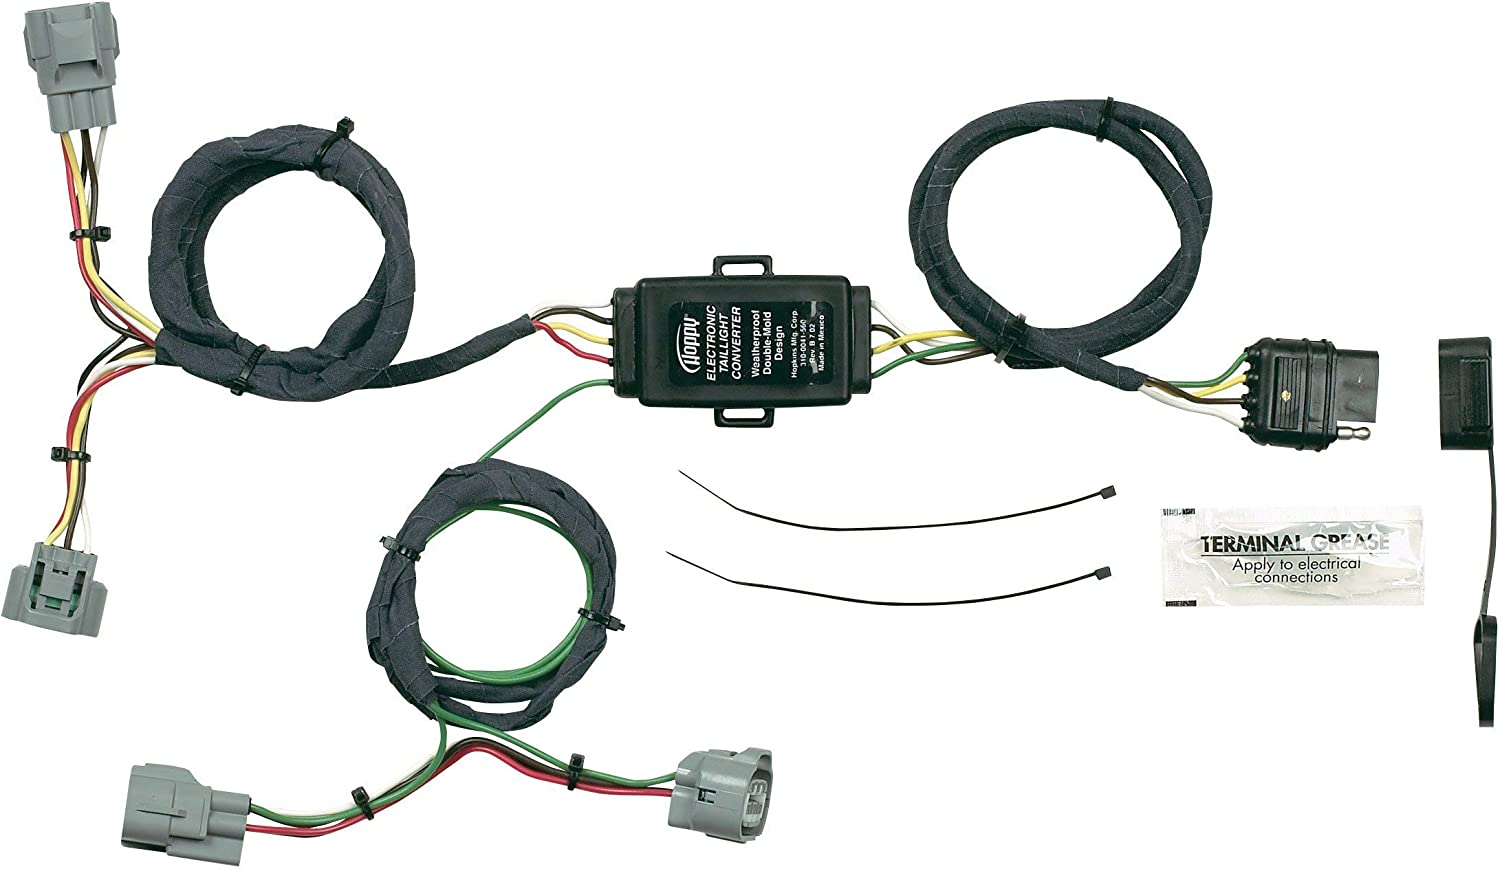 7 Pin Trailer Wiring Diagram Hopkins from images-na.ssl-images-amazon.com